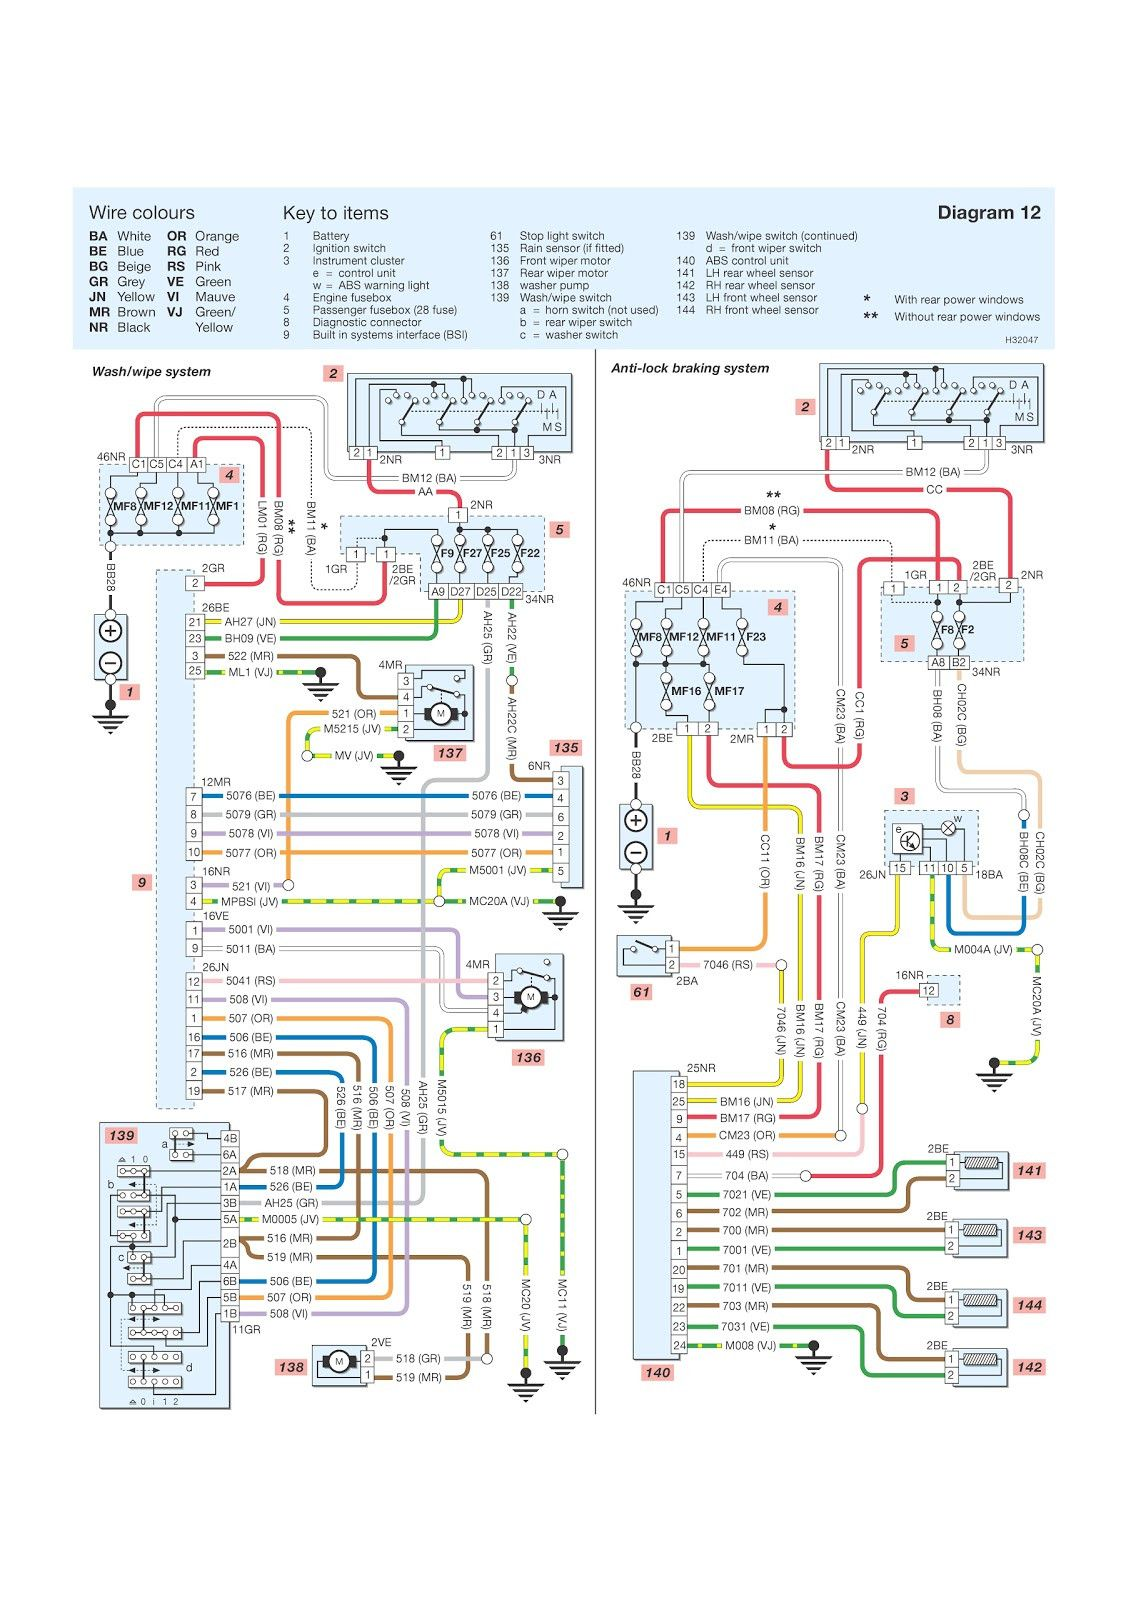 peugeot 206 radio wiring diagram peugeot 306 radio wiring new peugeot 206 wiring diagram your diagrams source ... #13